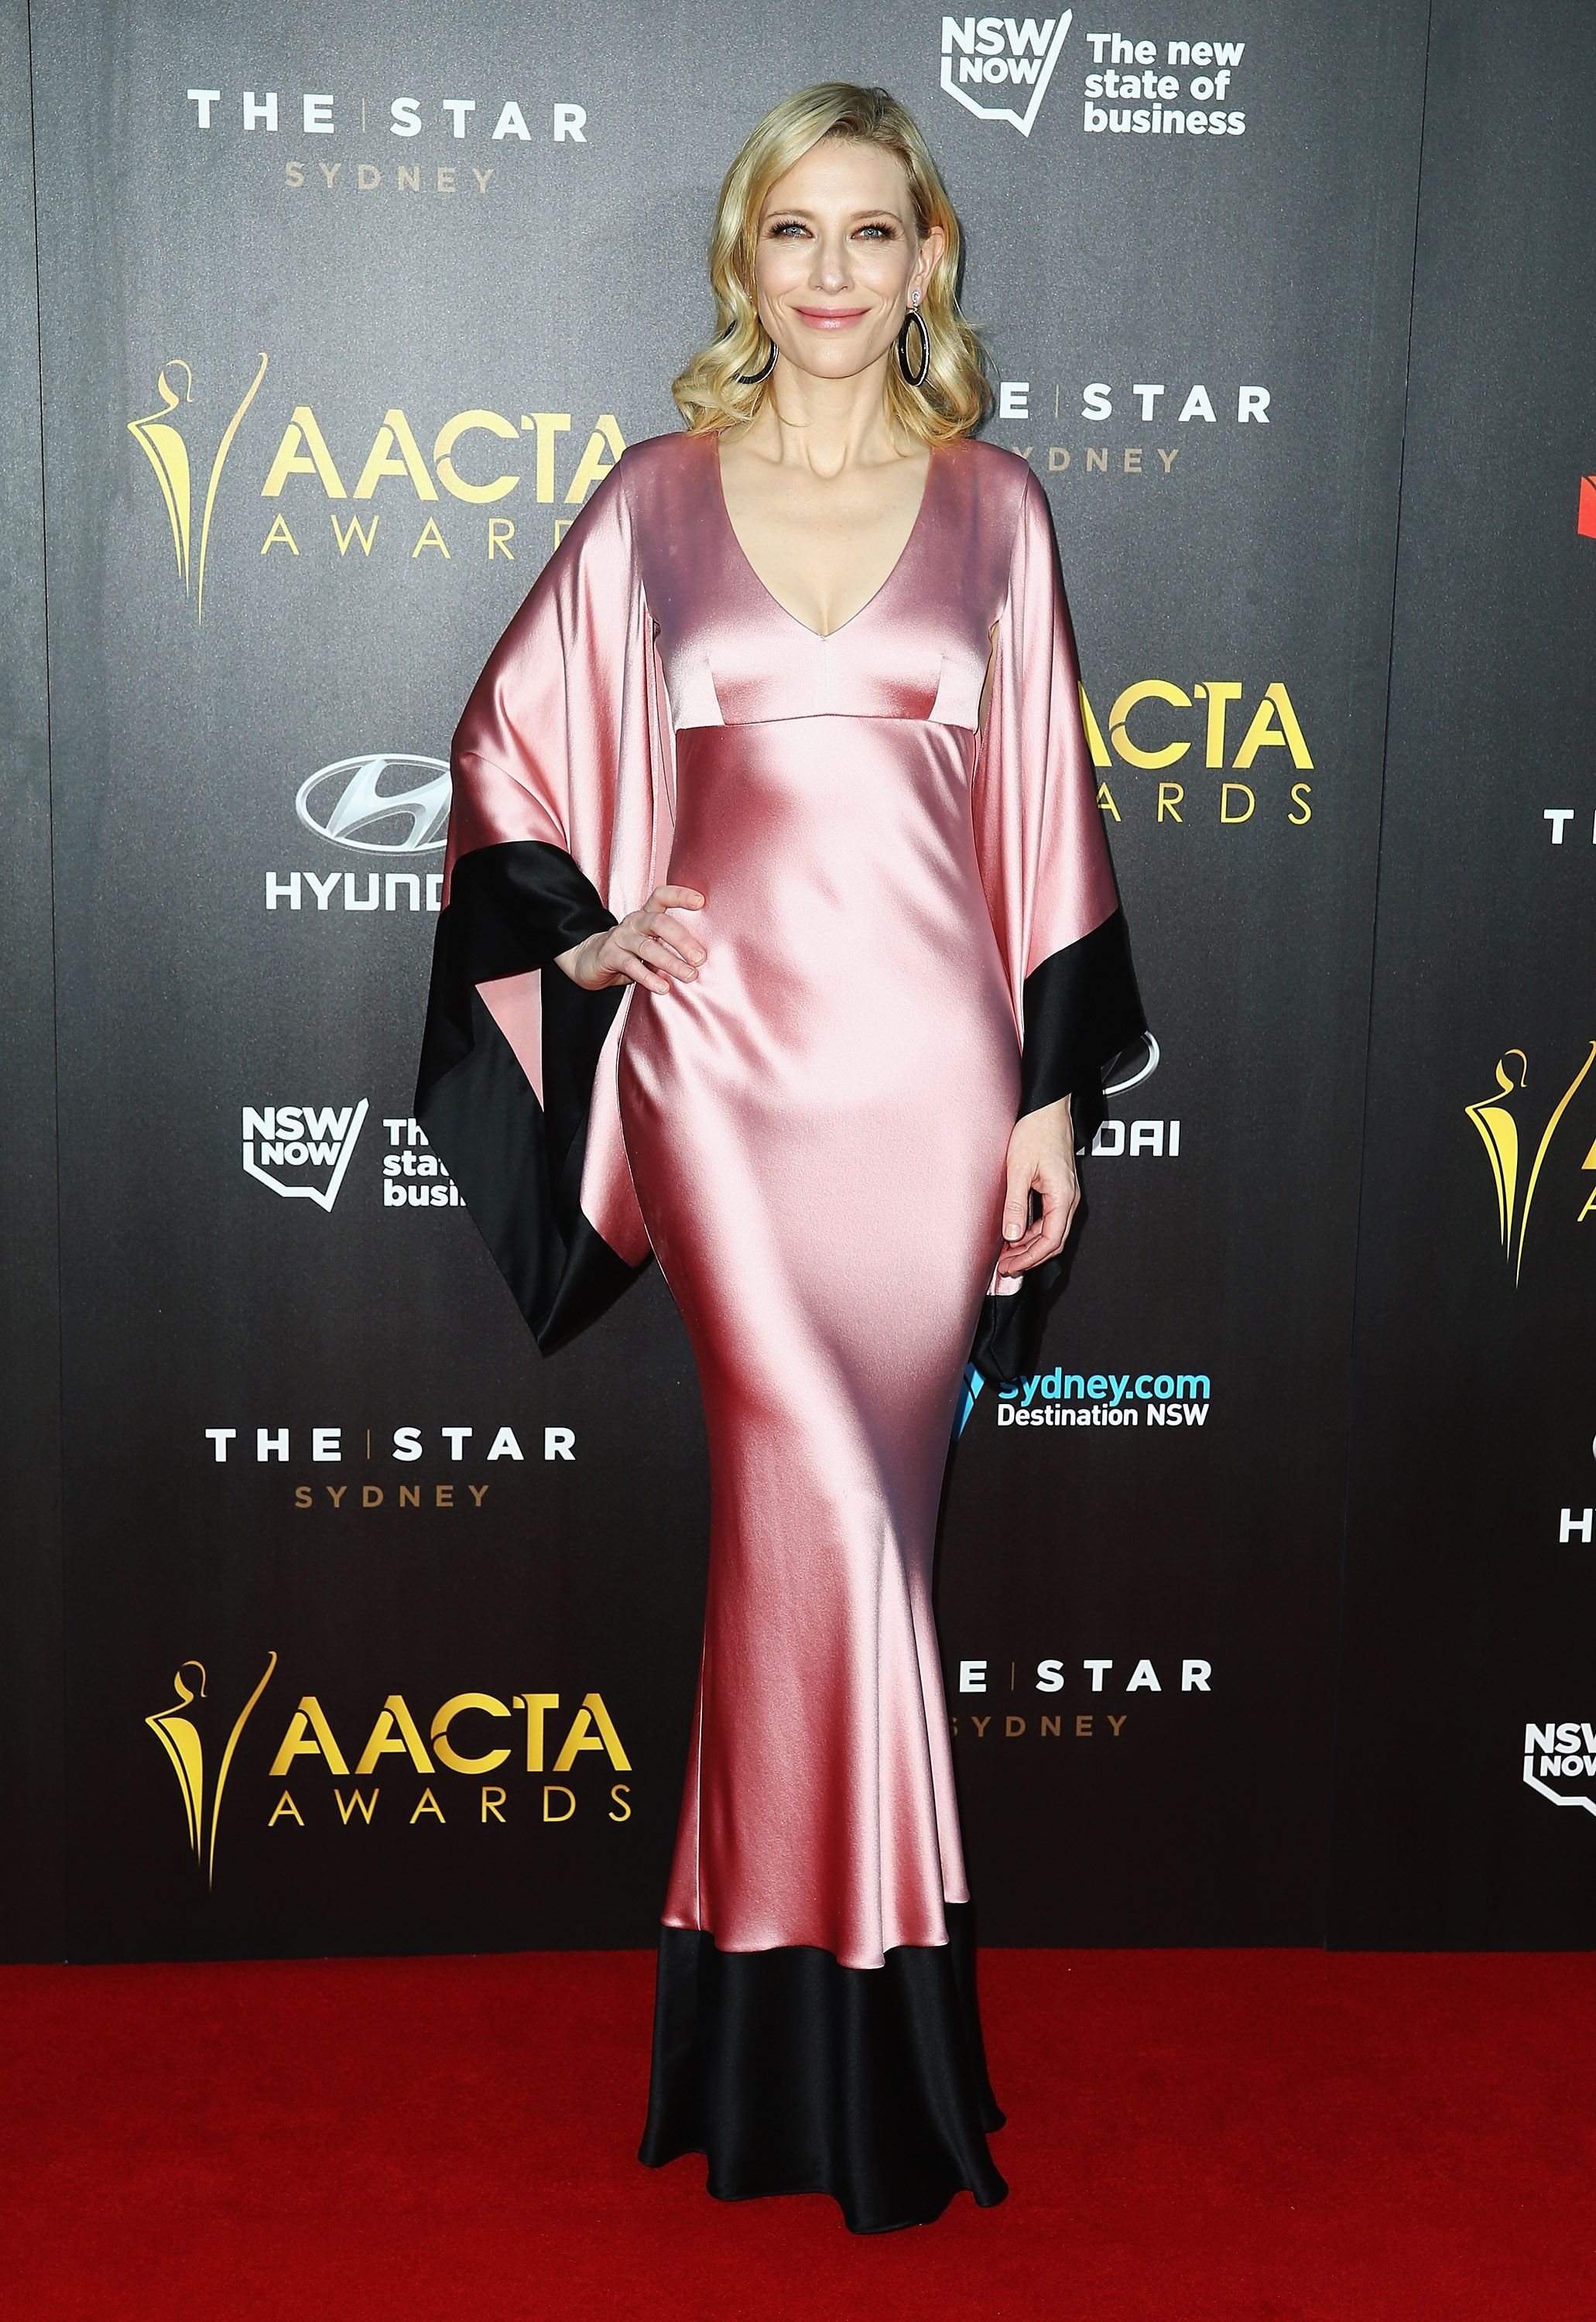 Cate Blanchett wearing a pink kimono at the 2015 AACTA Awards